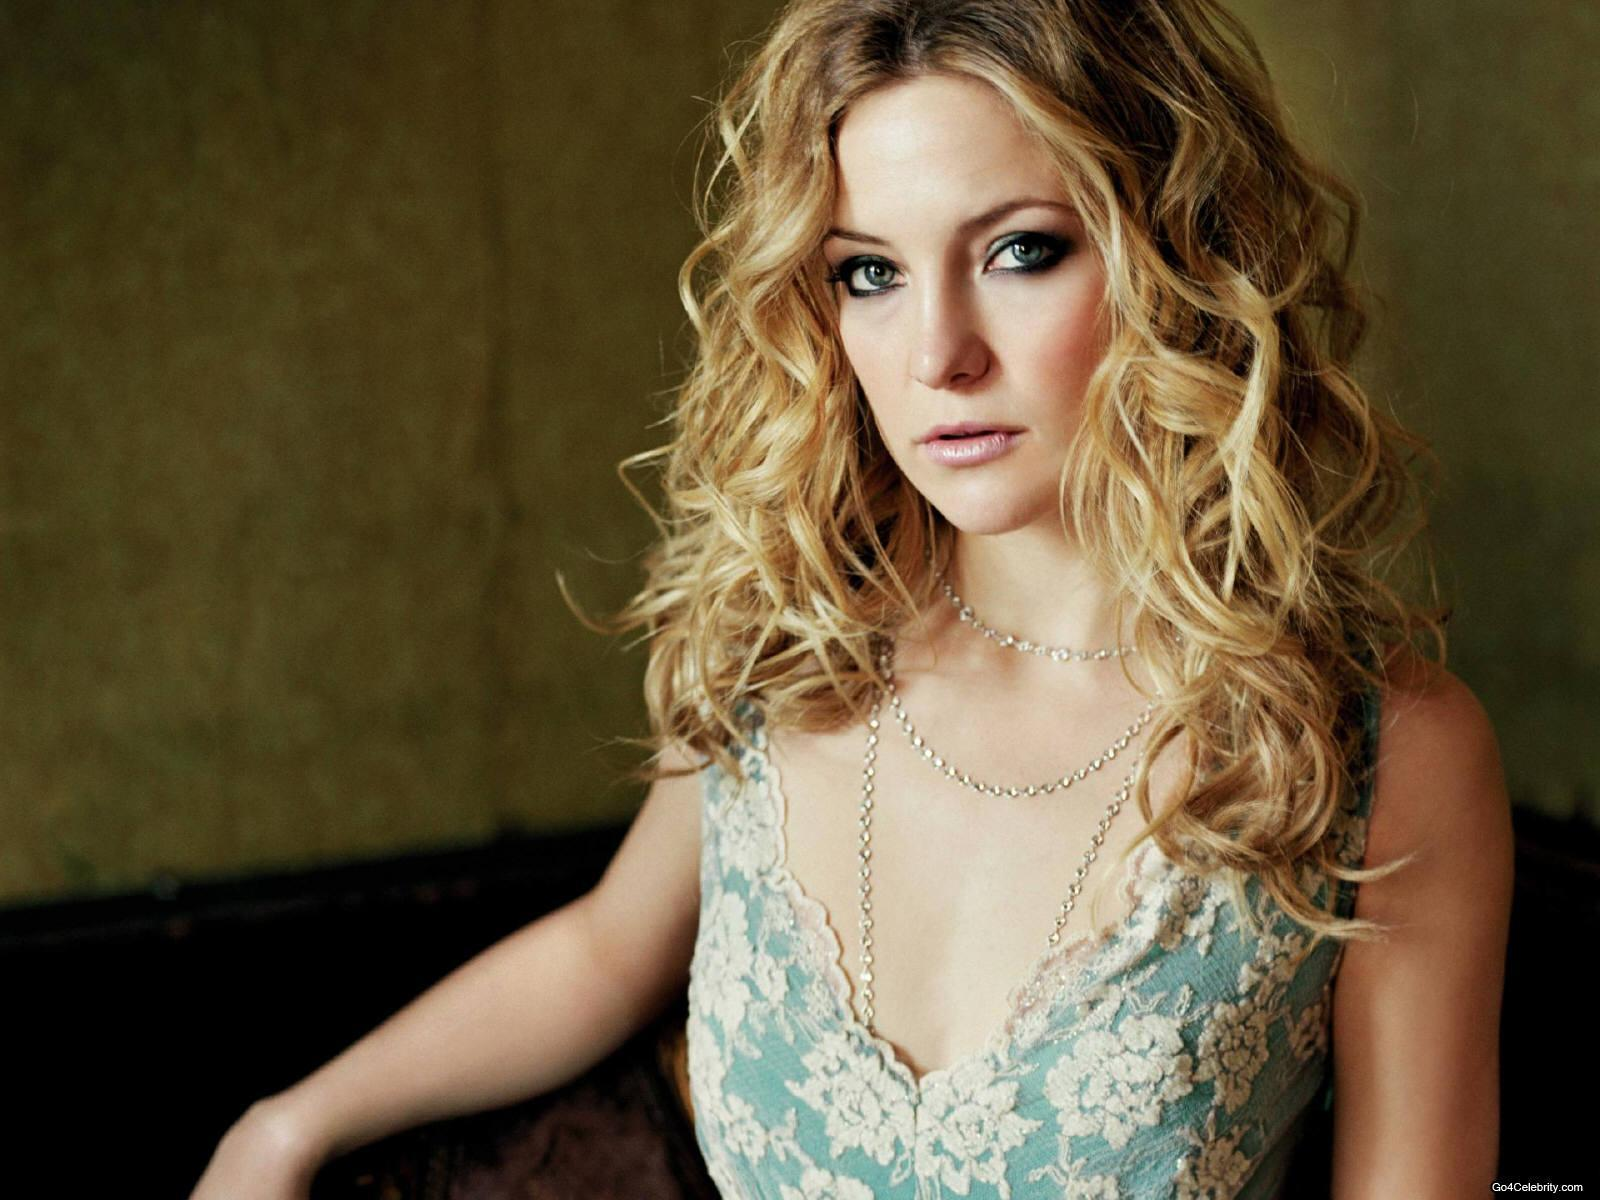 http://images2.fanpop.com/images/photos/6800000/Kate-kate-hudson-6836772-1600-1200.jpg